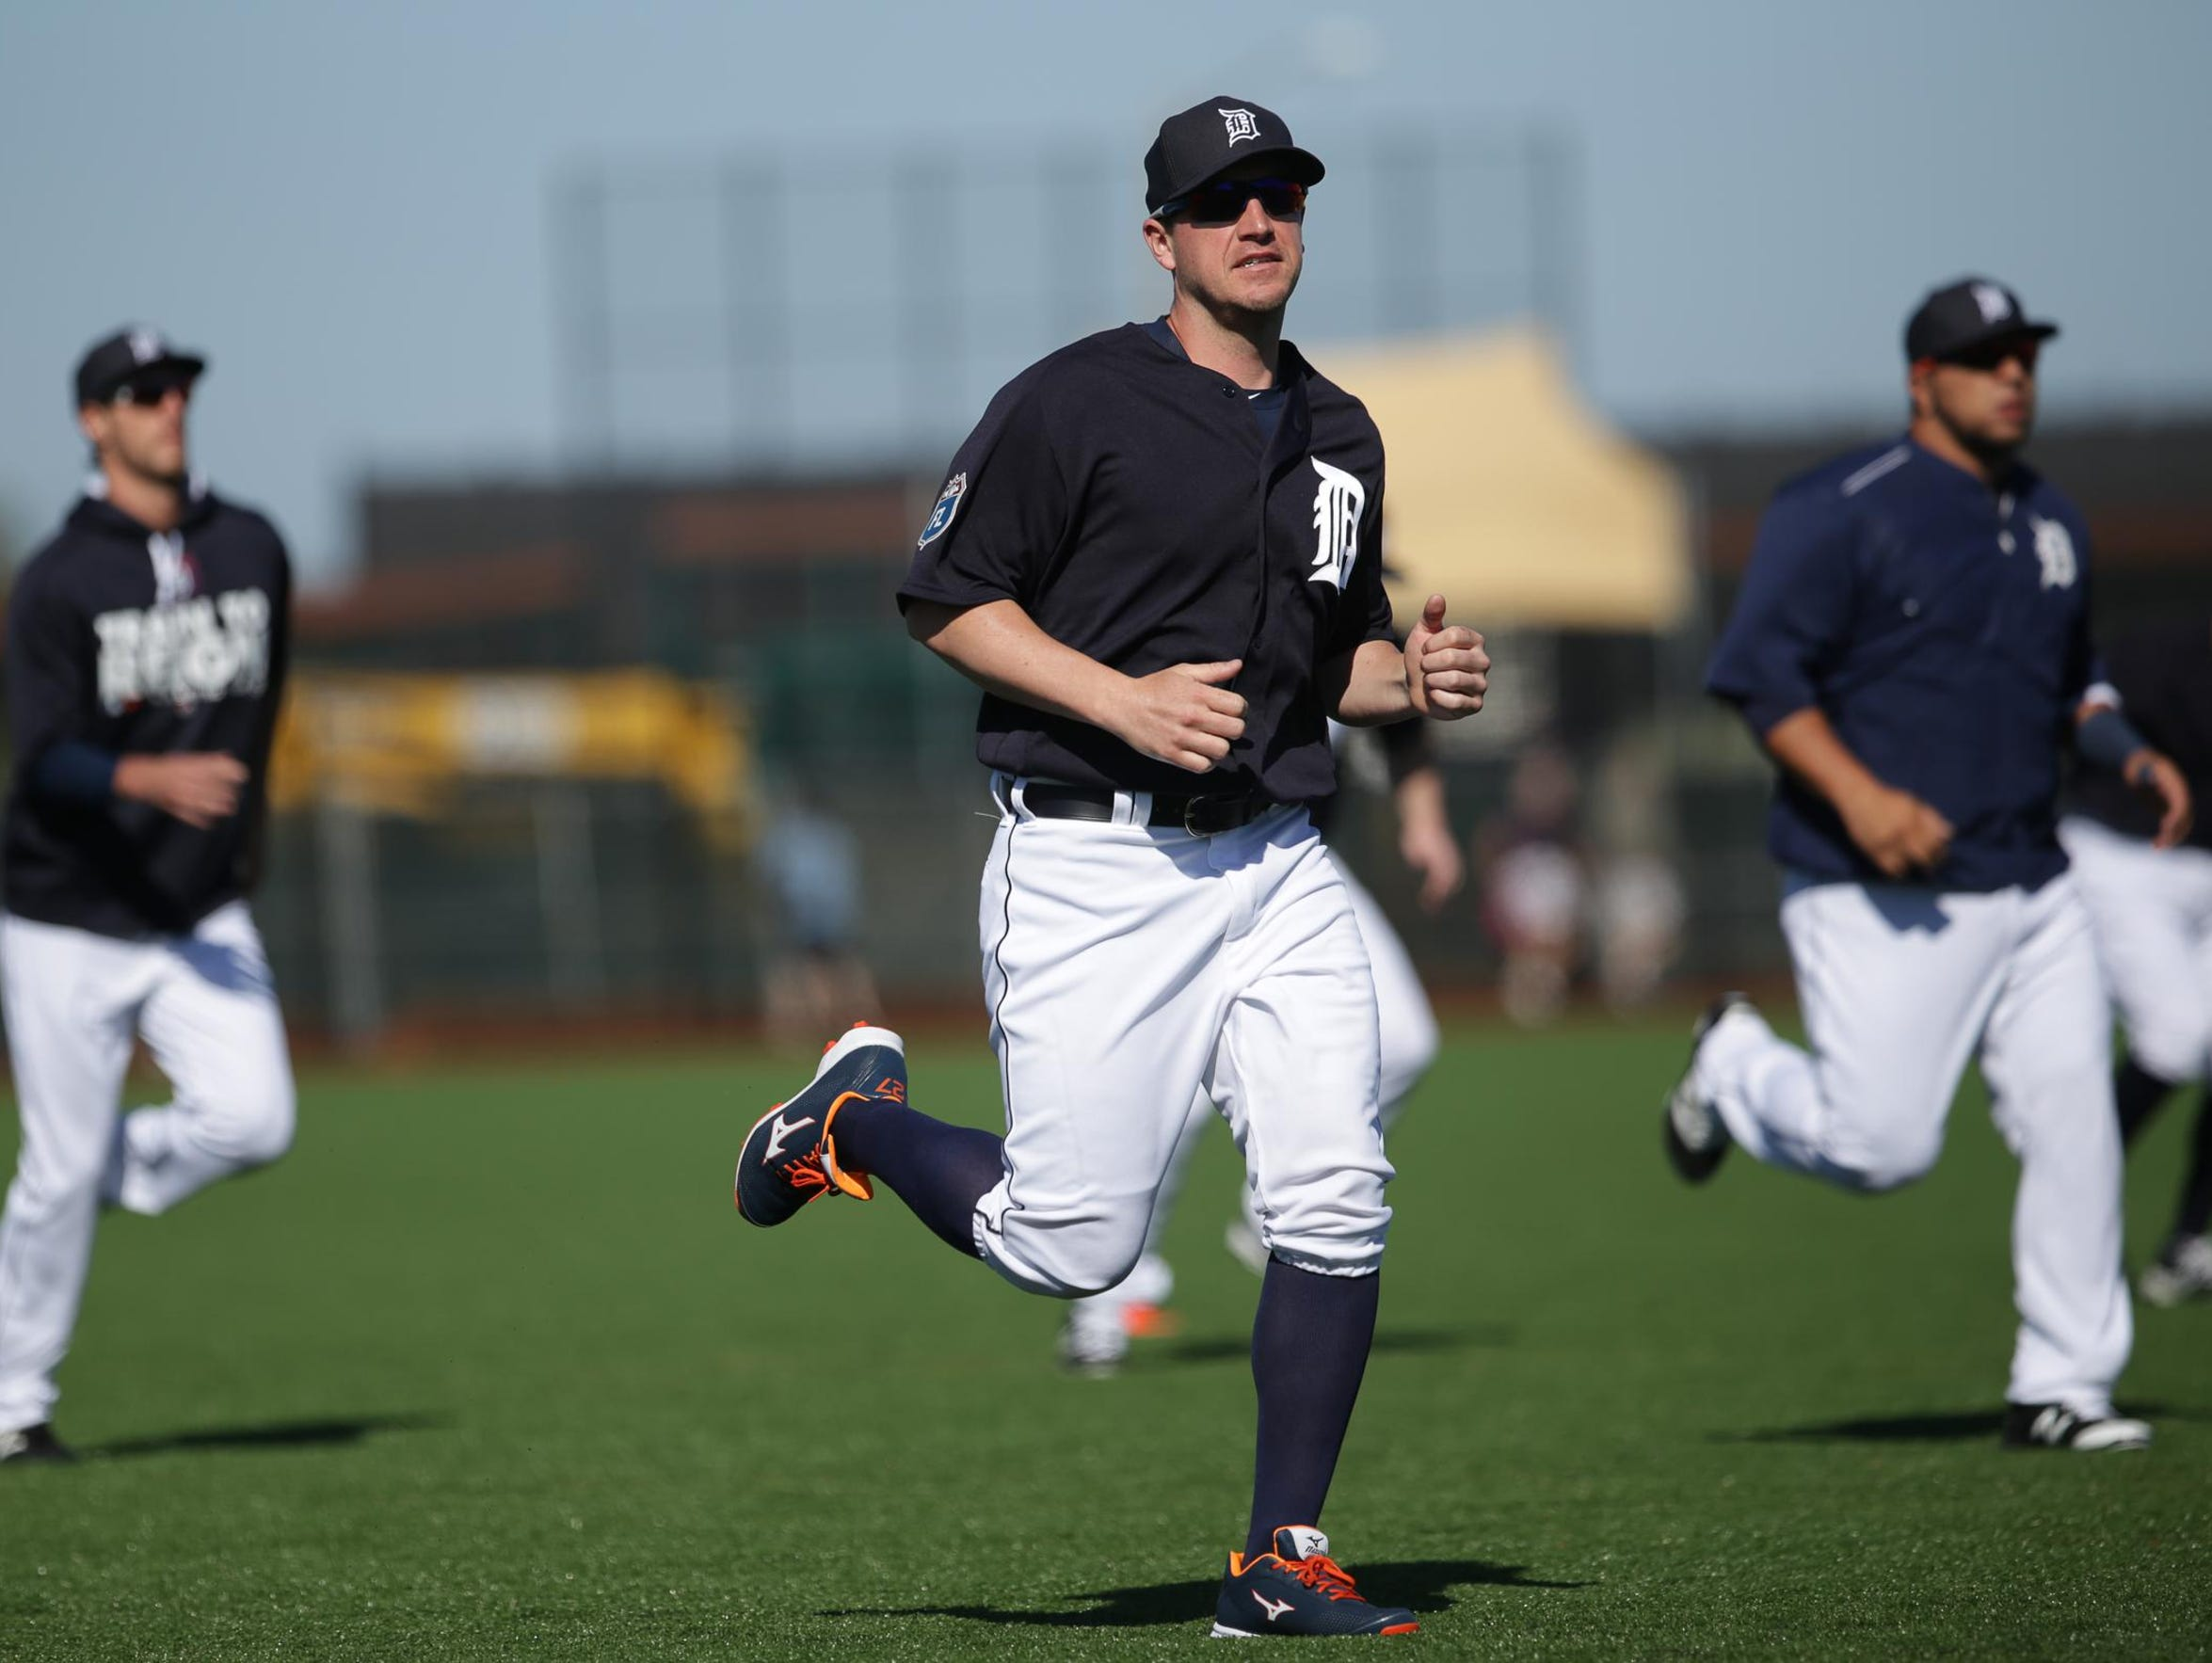 Tigers pitcher Jordan Zimmermann warms up during Tigers